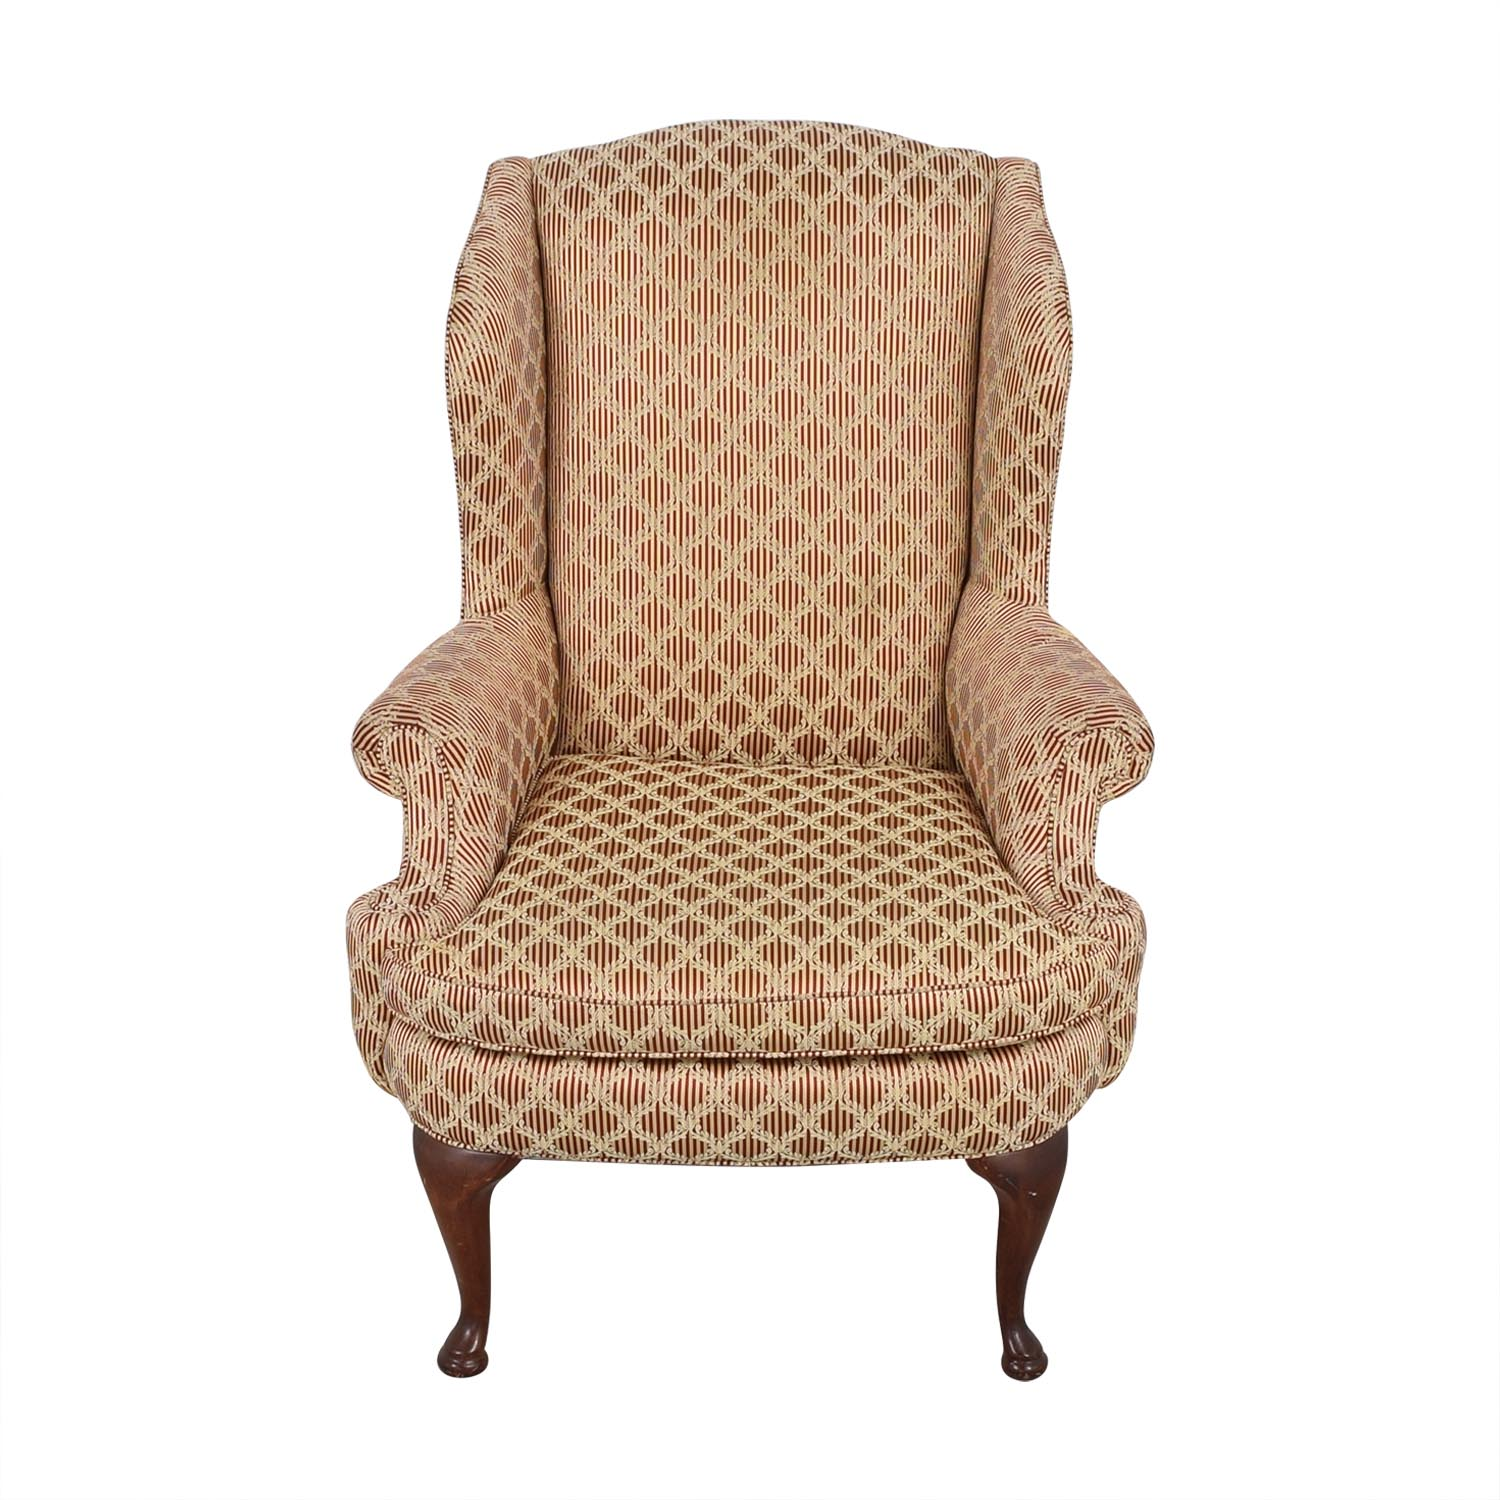 Plunkett Furniture Plunkett Upholstered Wingback Chair coupon